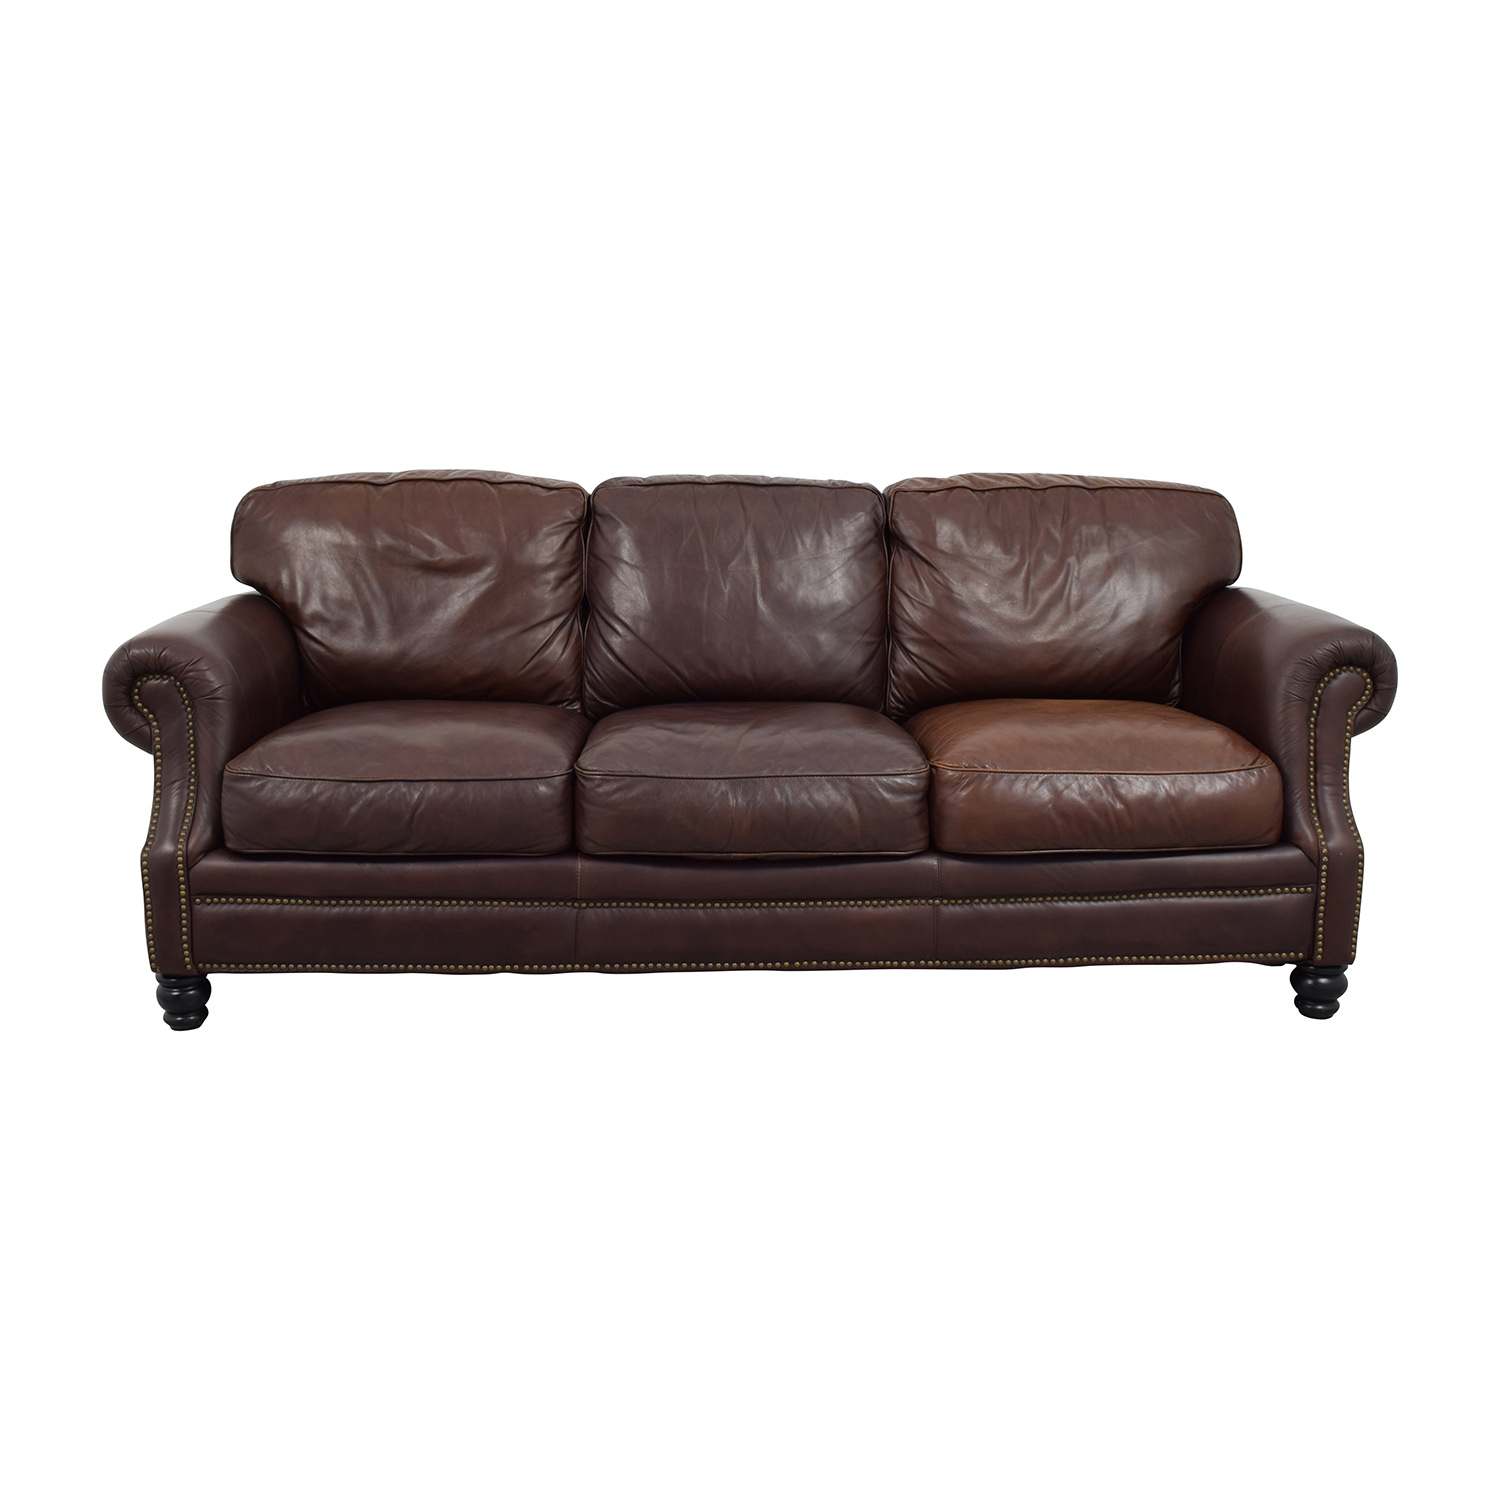 Ashton sofa 10 spring street ashton faux leather sofa bed for Cushions for leather sofas